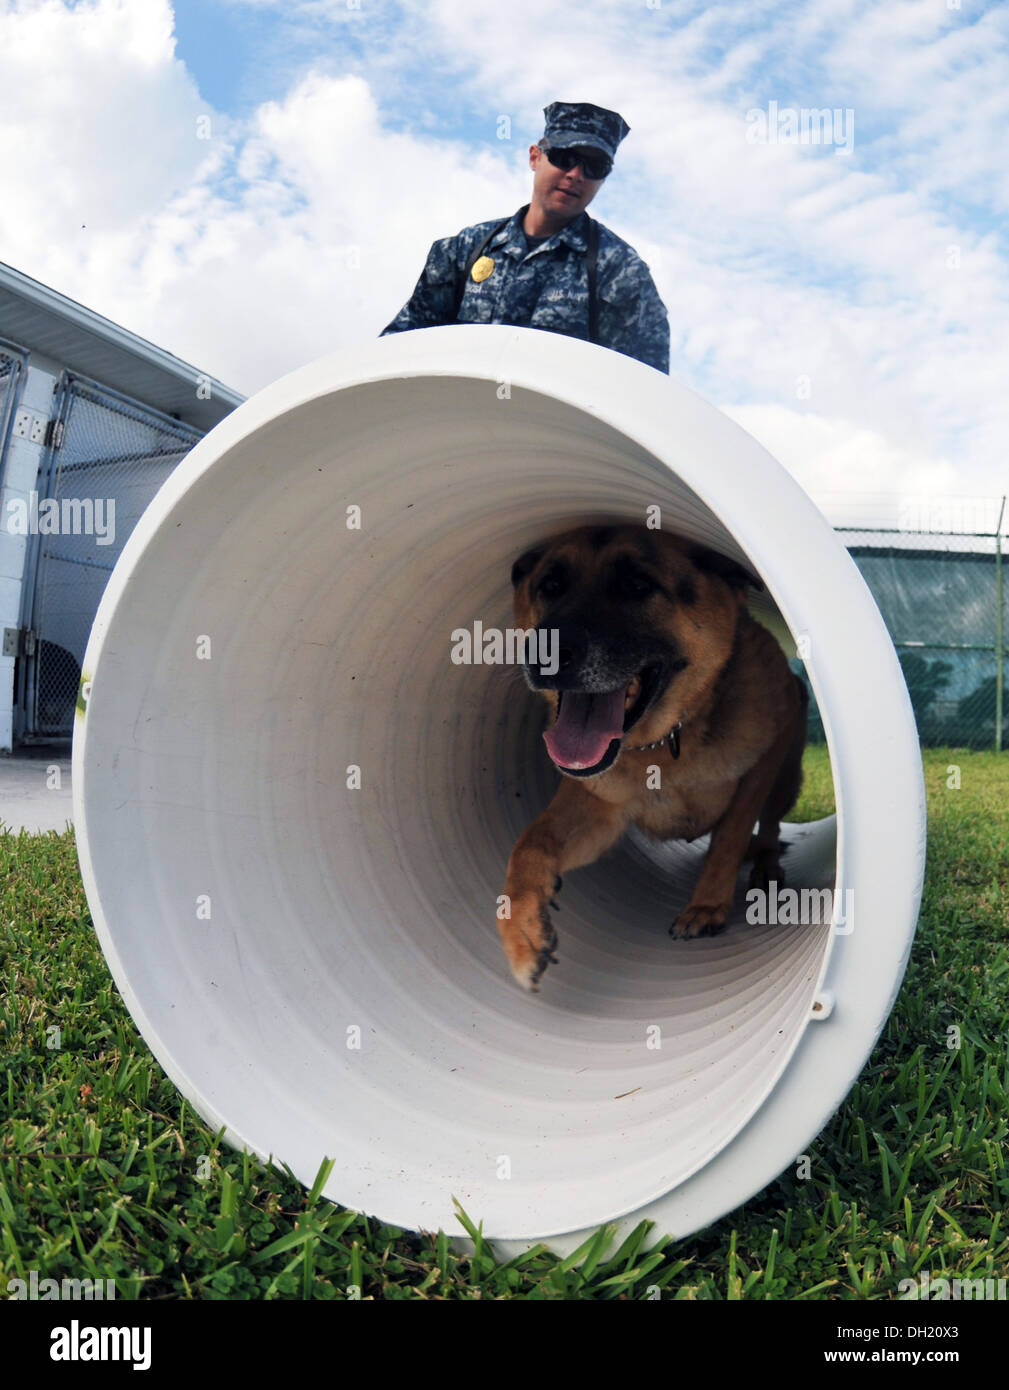 Master-at-Arms 2nd Class Justin Sosa, from Los Angeles, directs Military Working Dog Hopski through an obedience Stock Photo